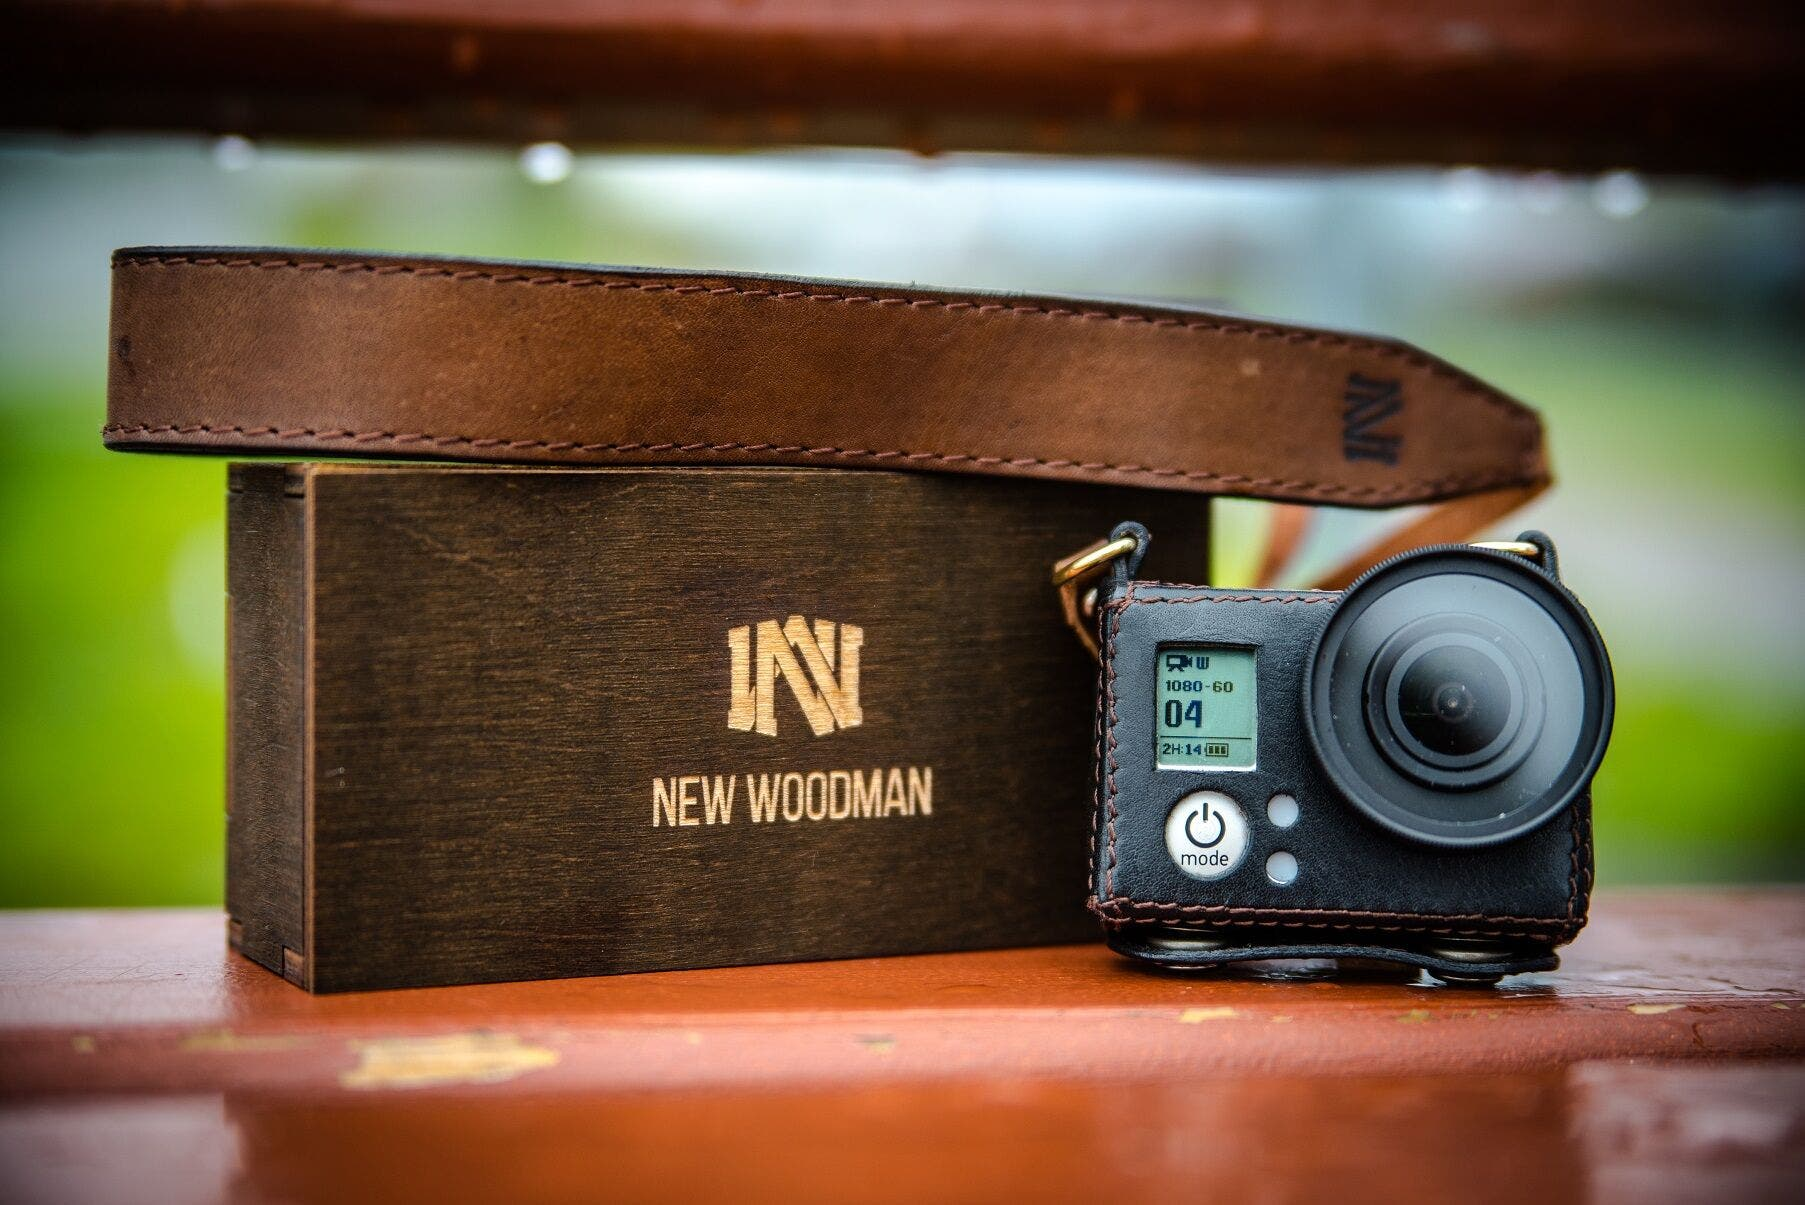 The New Woodman Provides Leather Style and New Portability Option for Your GoPro Camera